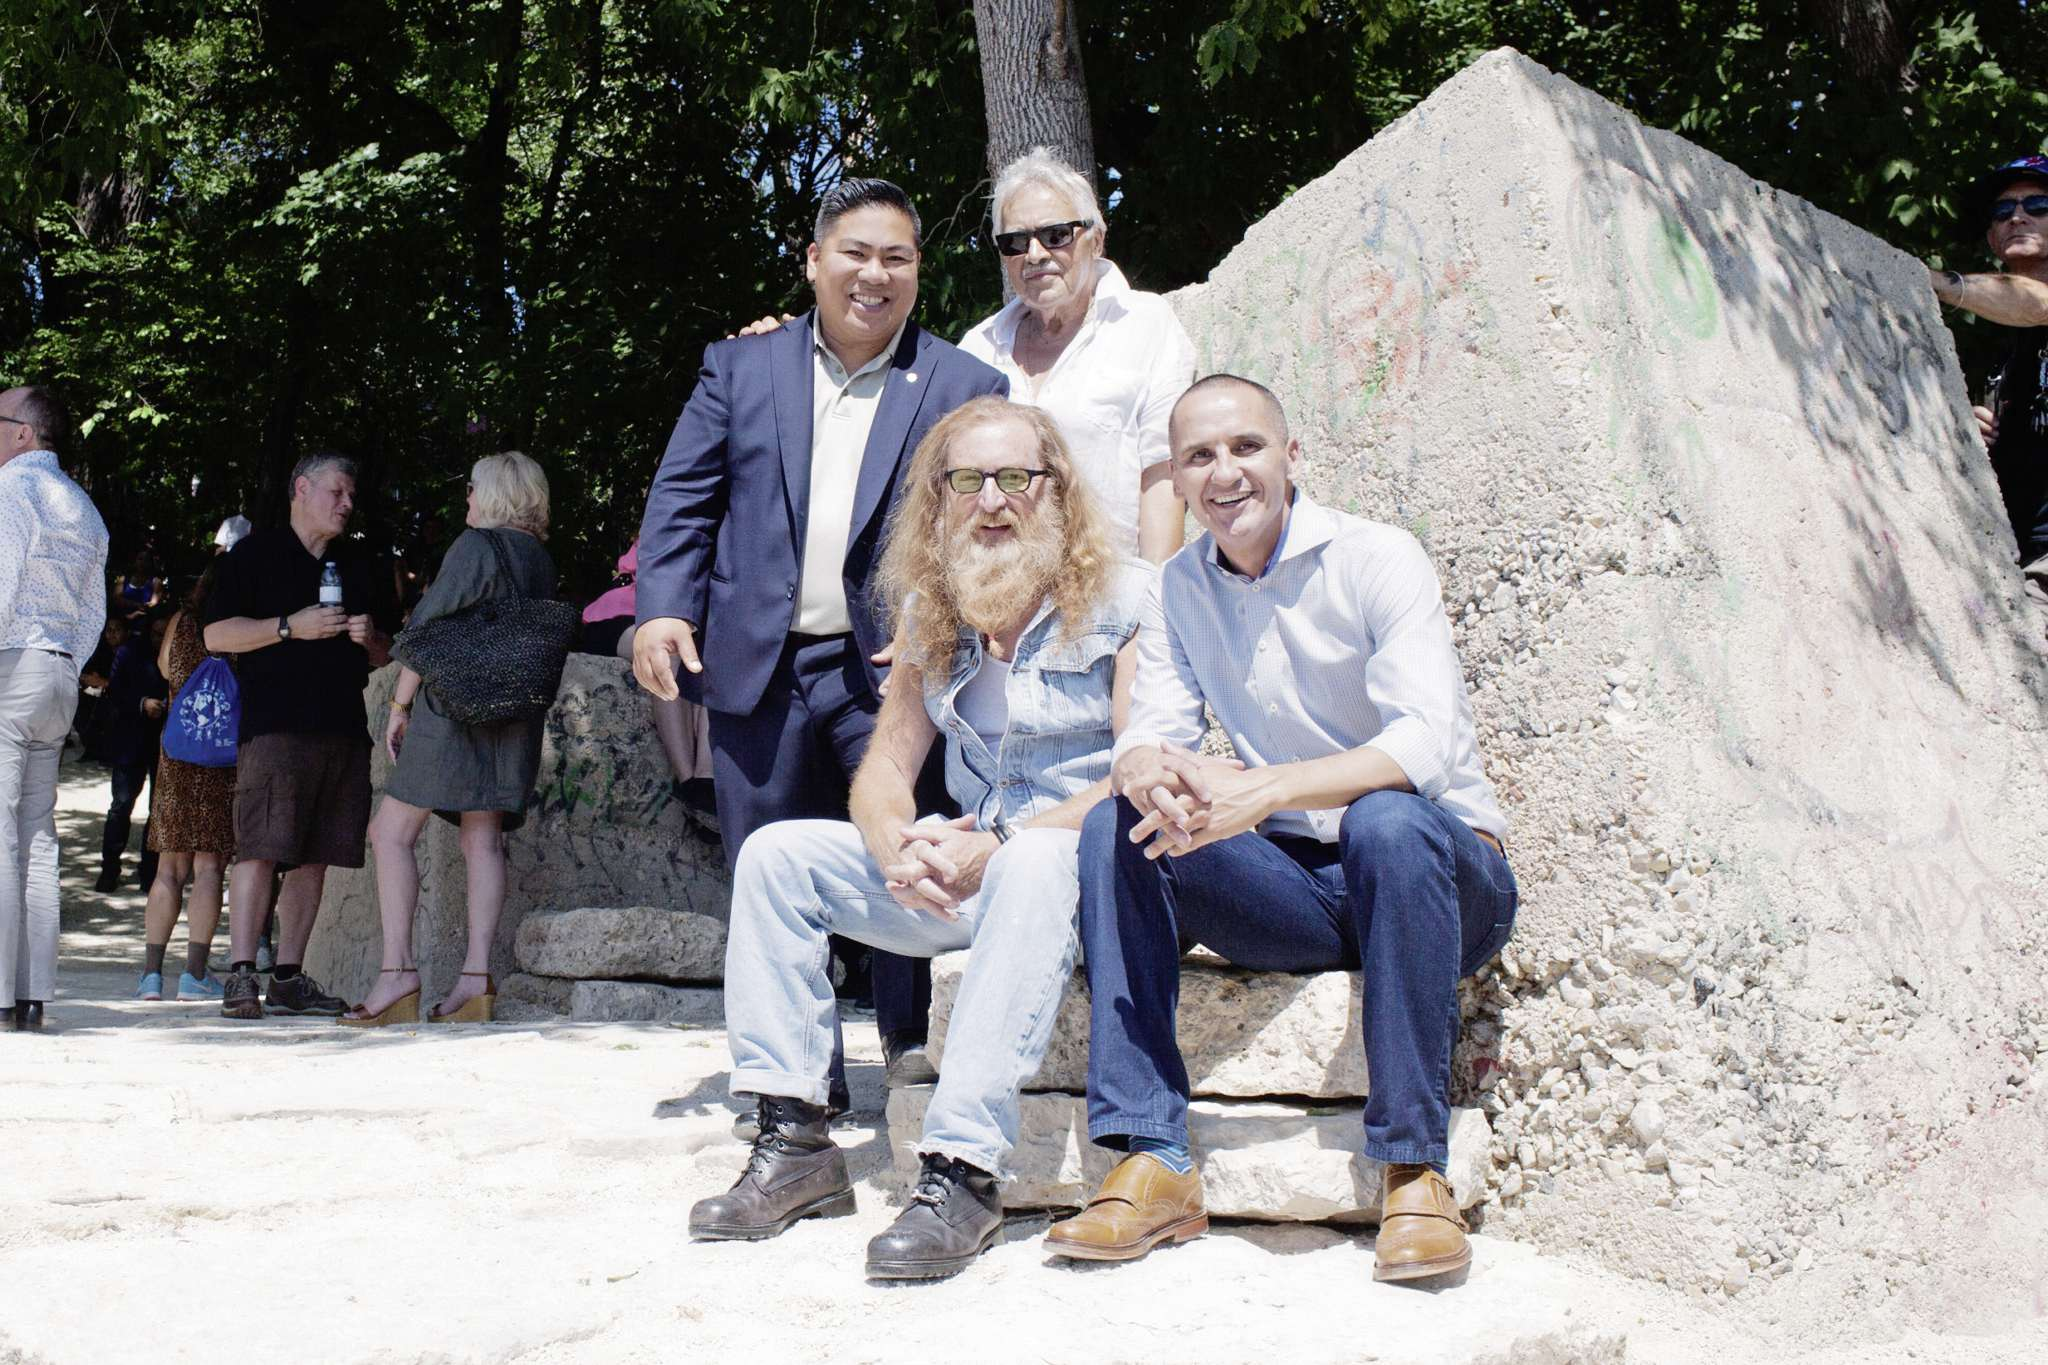 MLA Kevin Chief (front right) with Jordan Van Sewell (front left), city councillor Mike Pagtakhan (back left) and Louis Bako.